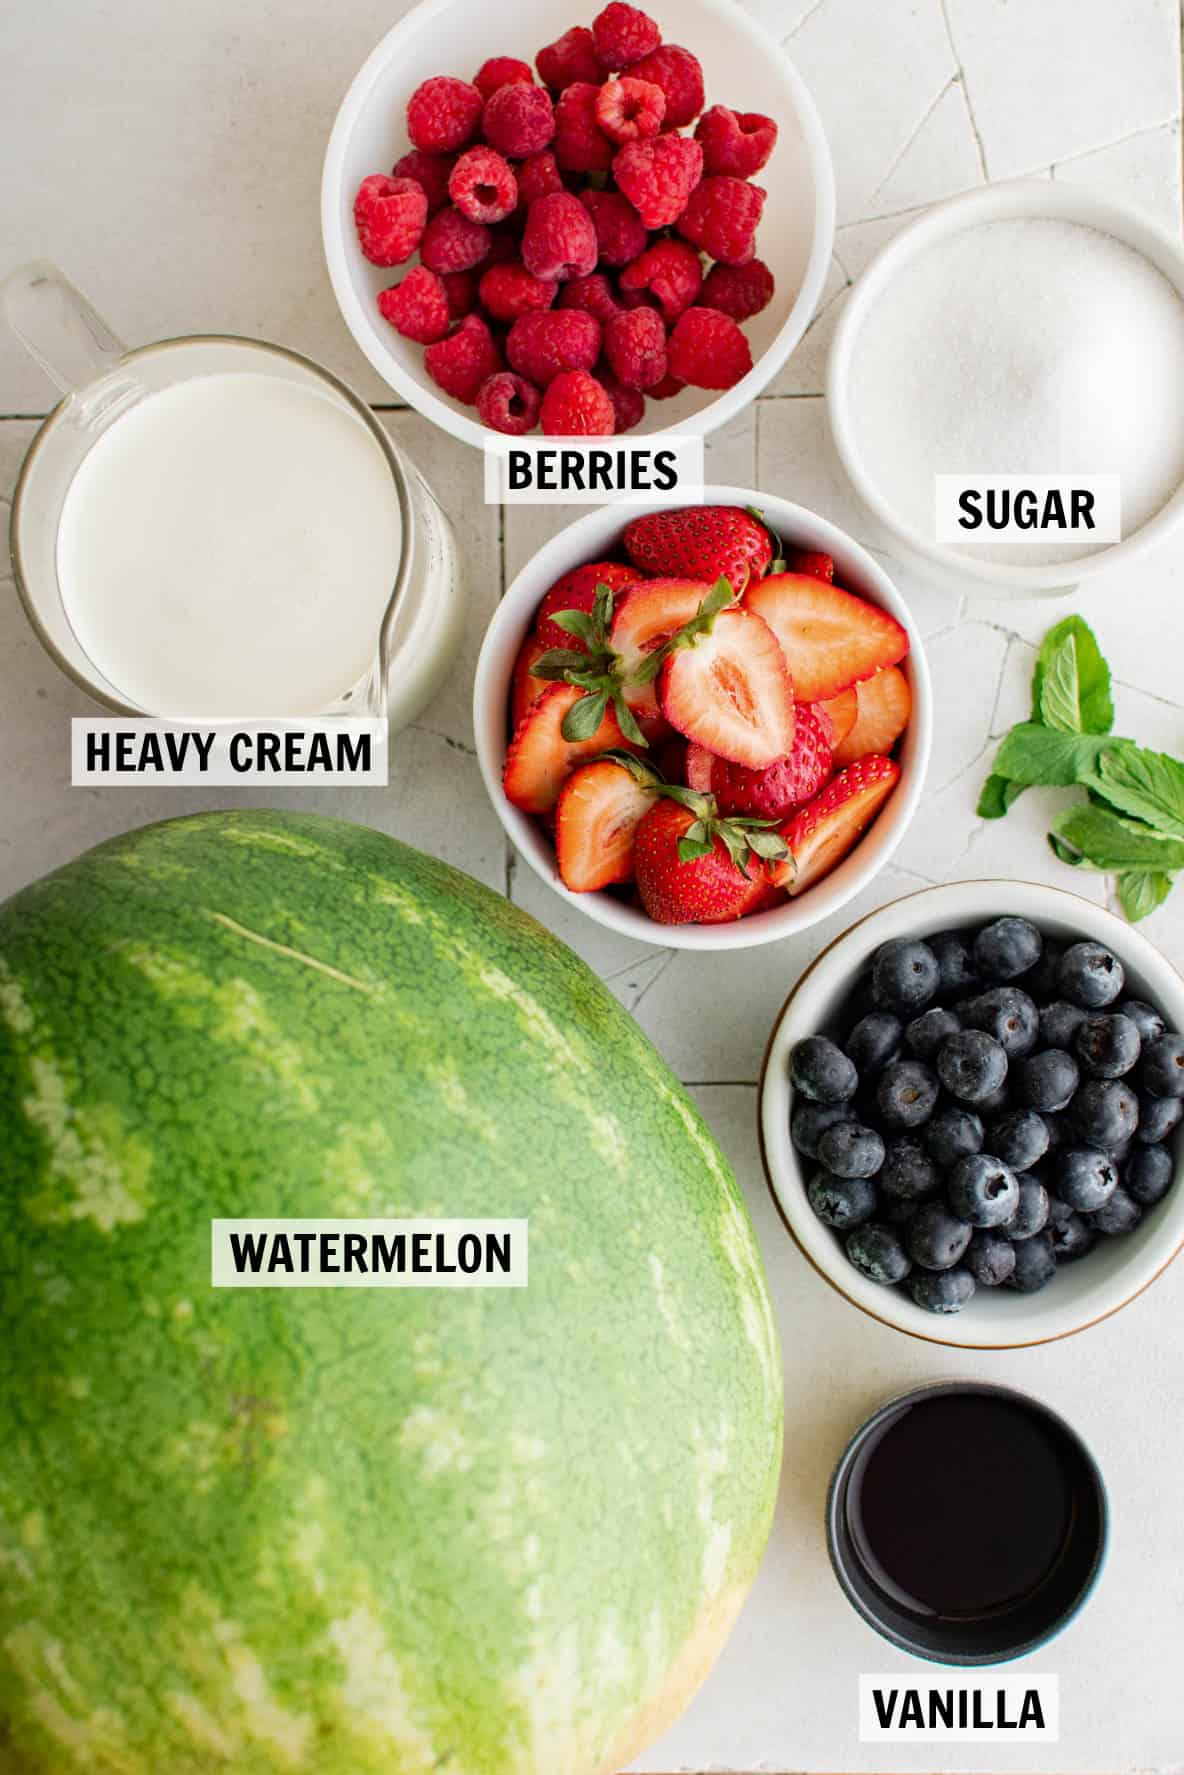 all of the ingredients for watermelon cake on a white countertop